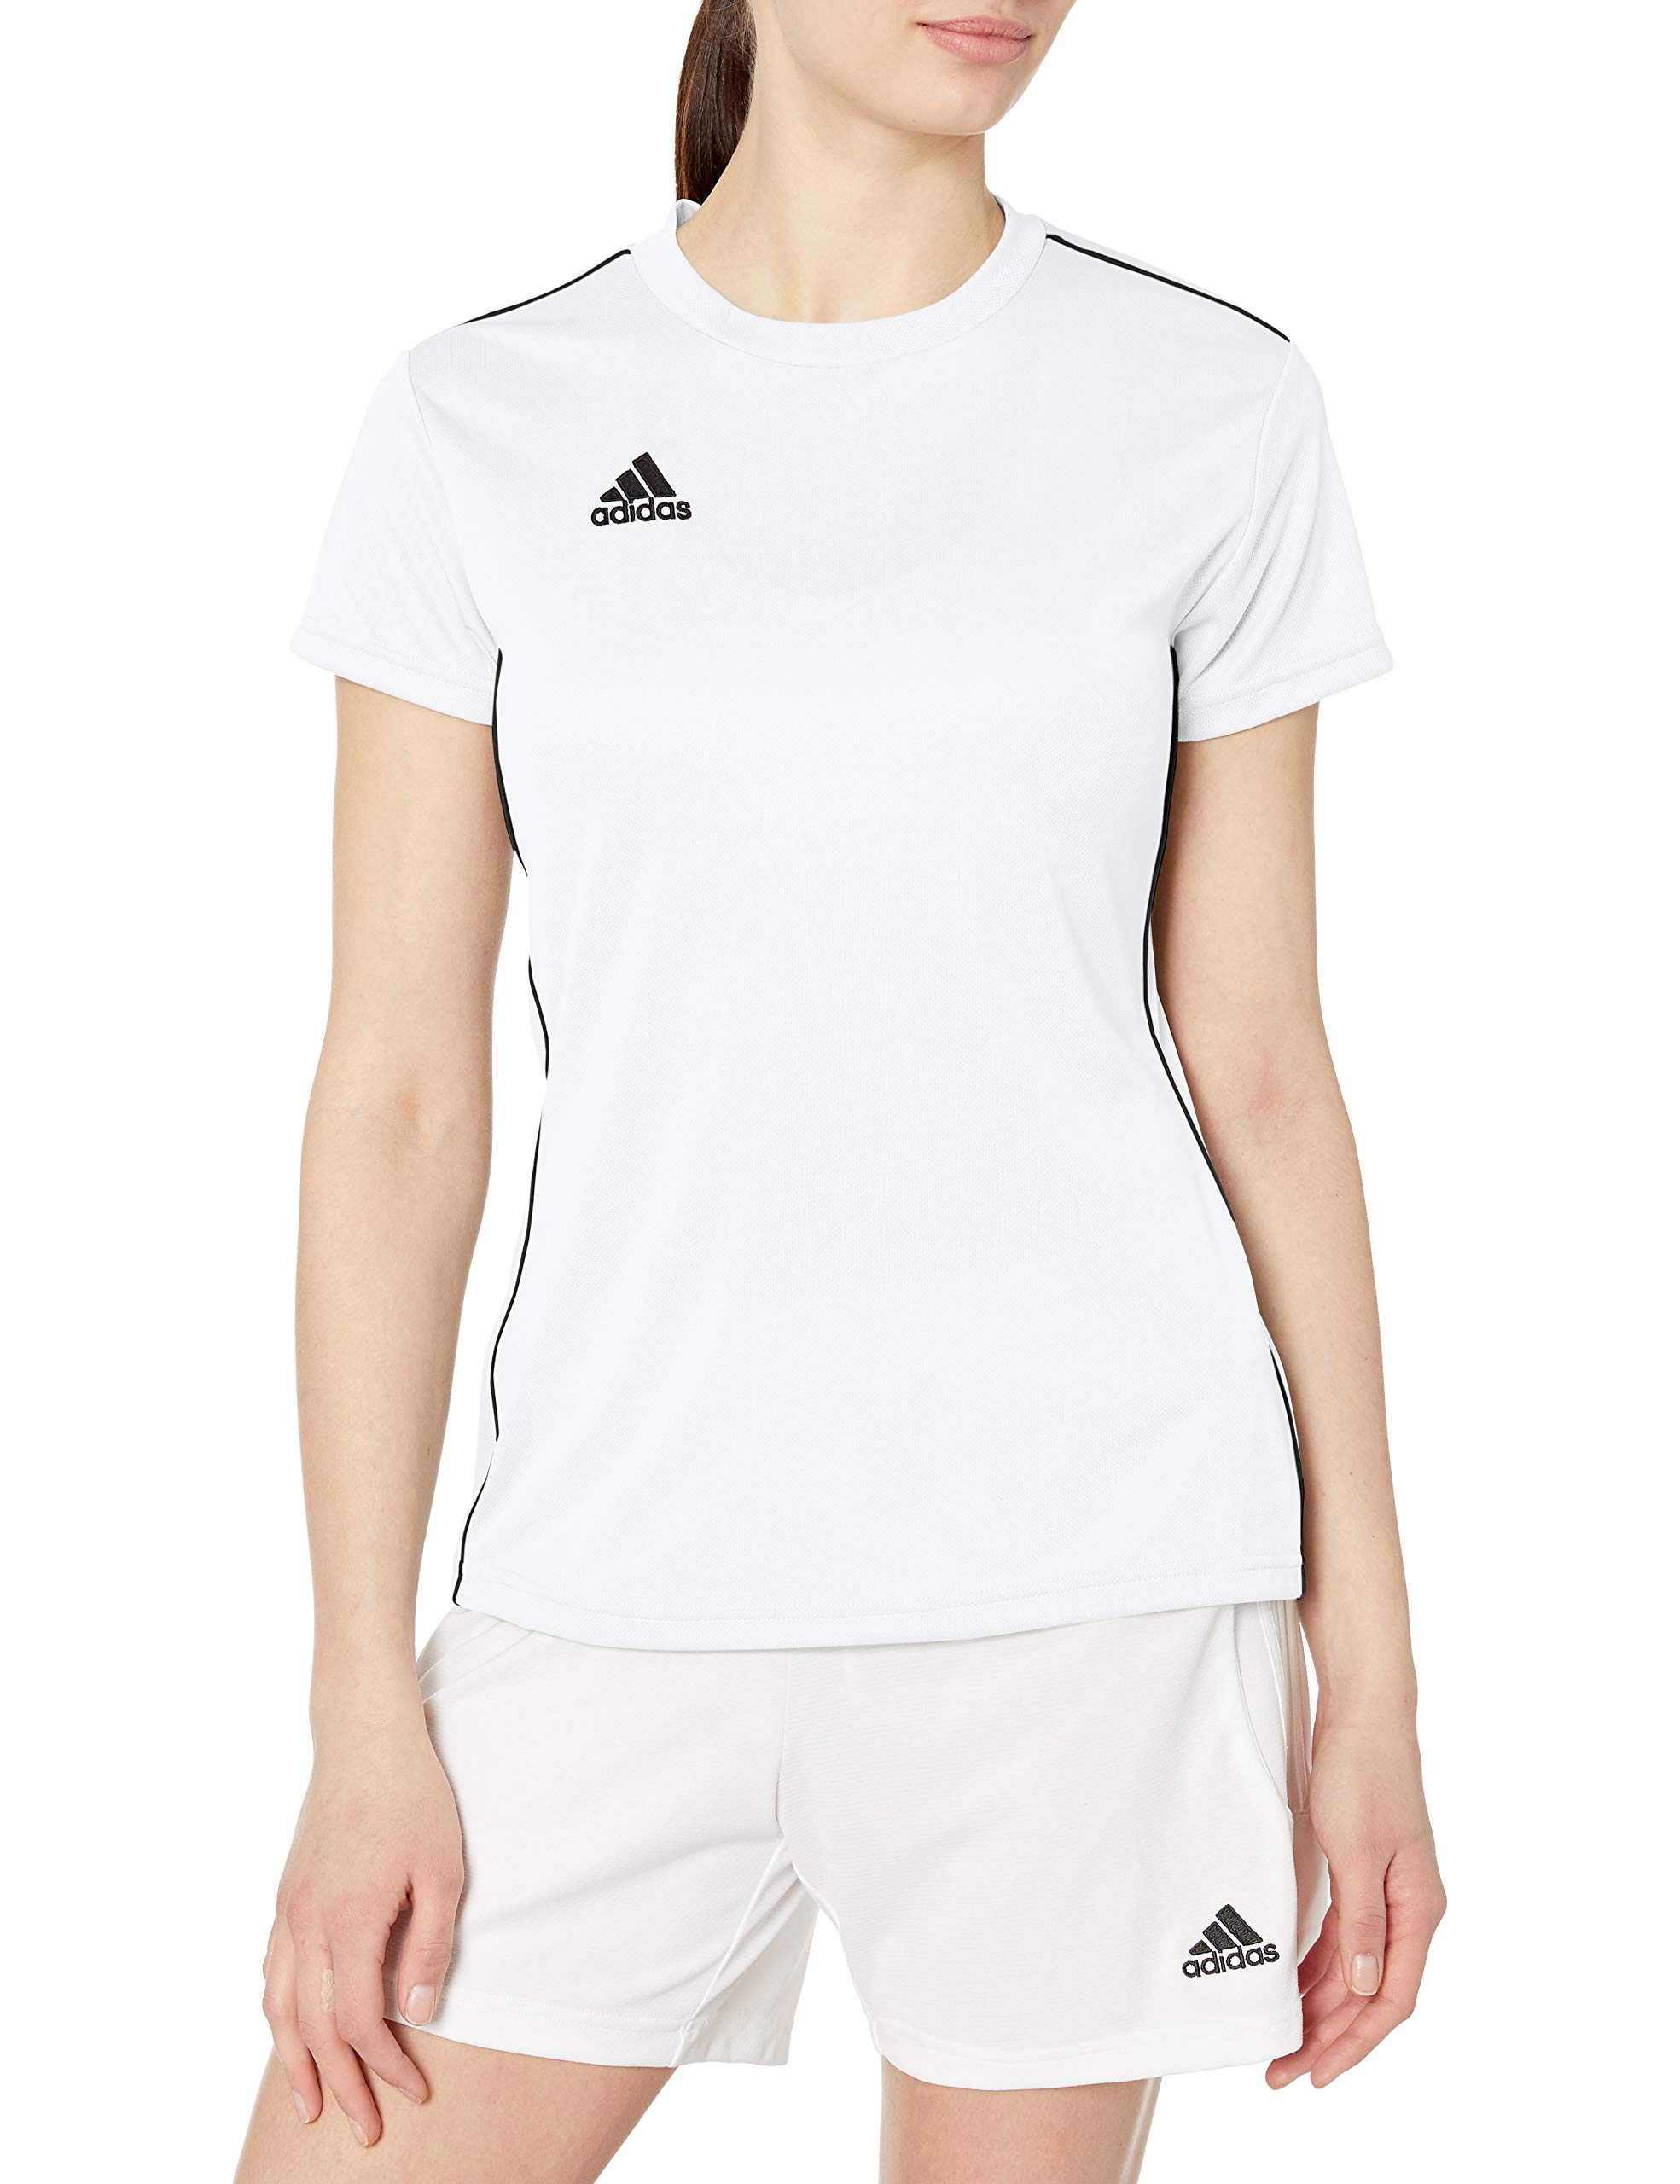 adidas Women's Core 18 Training Jersey- Buy Online in Andorra at ...